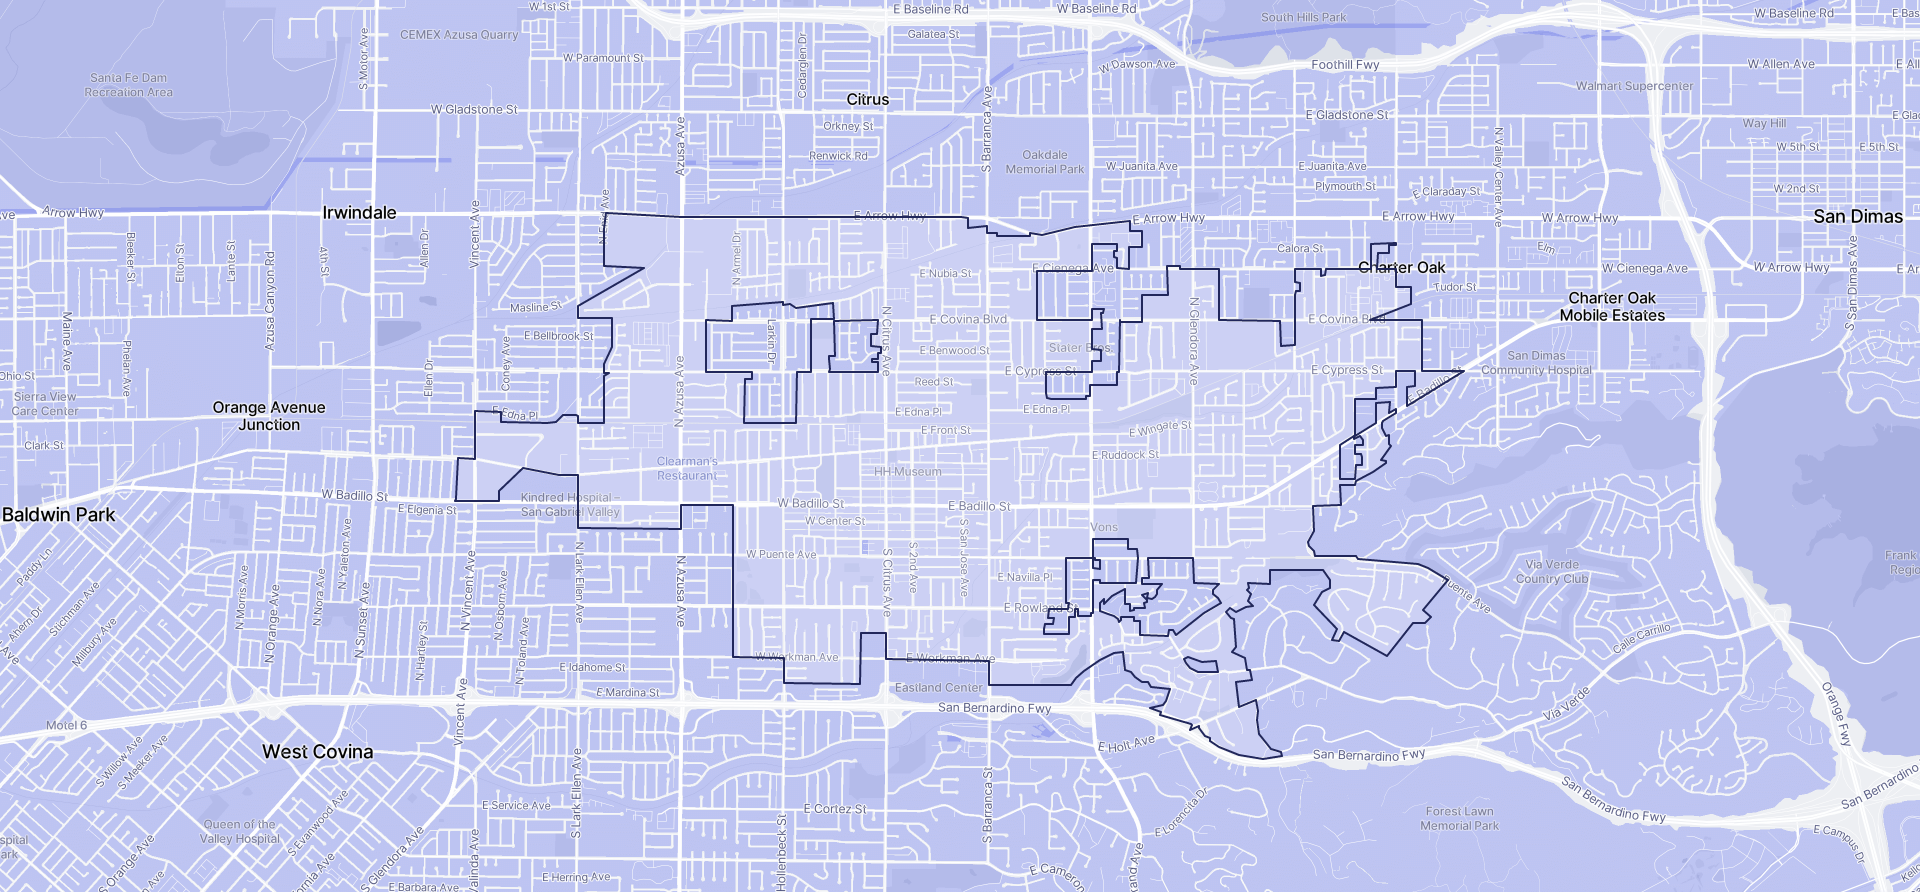 Image of Covina boundaries on a map.